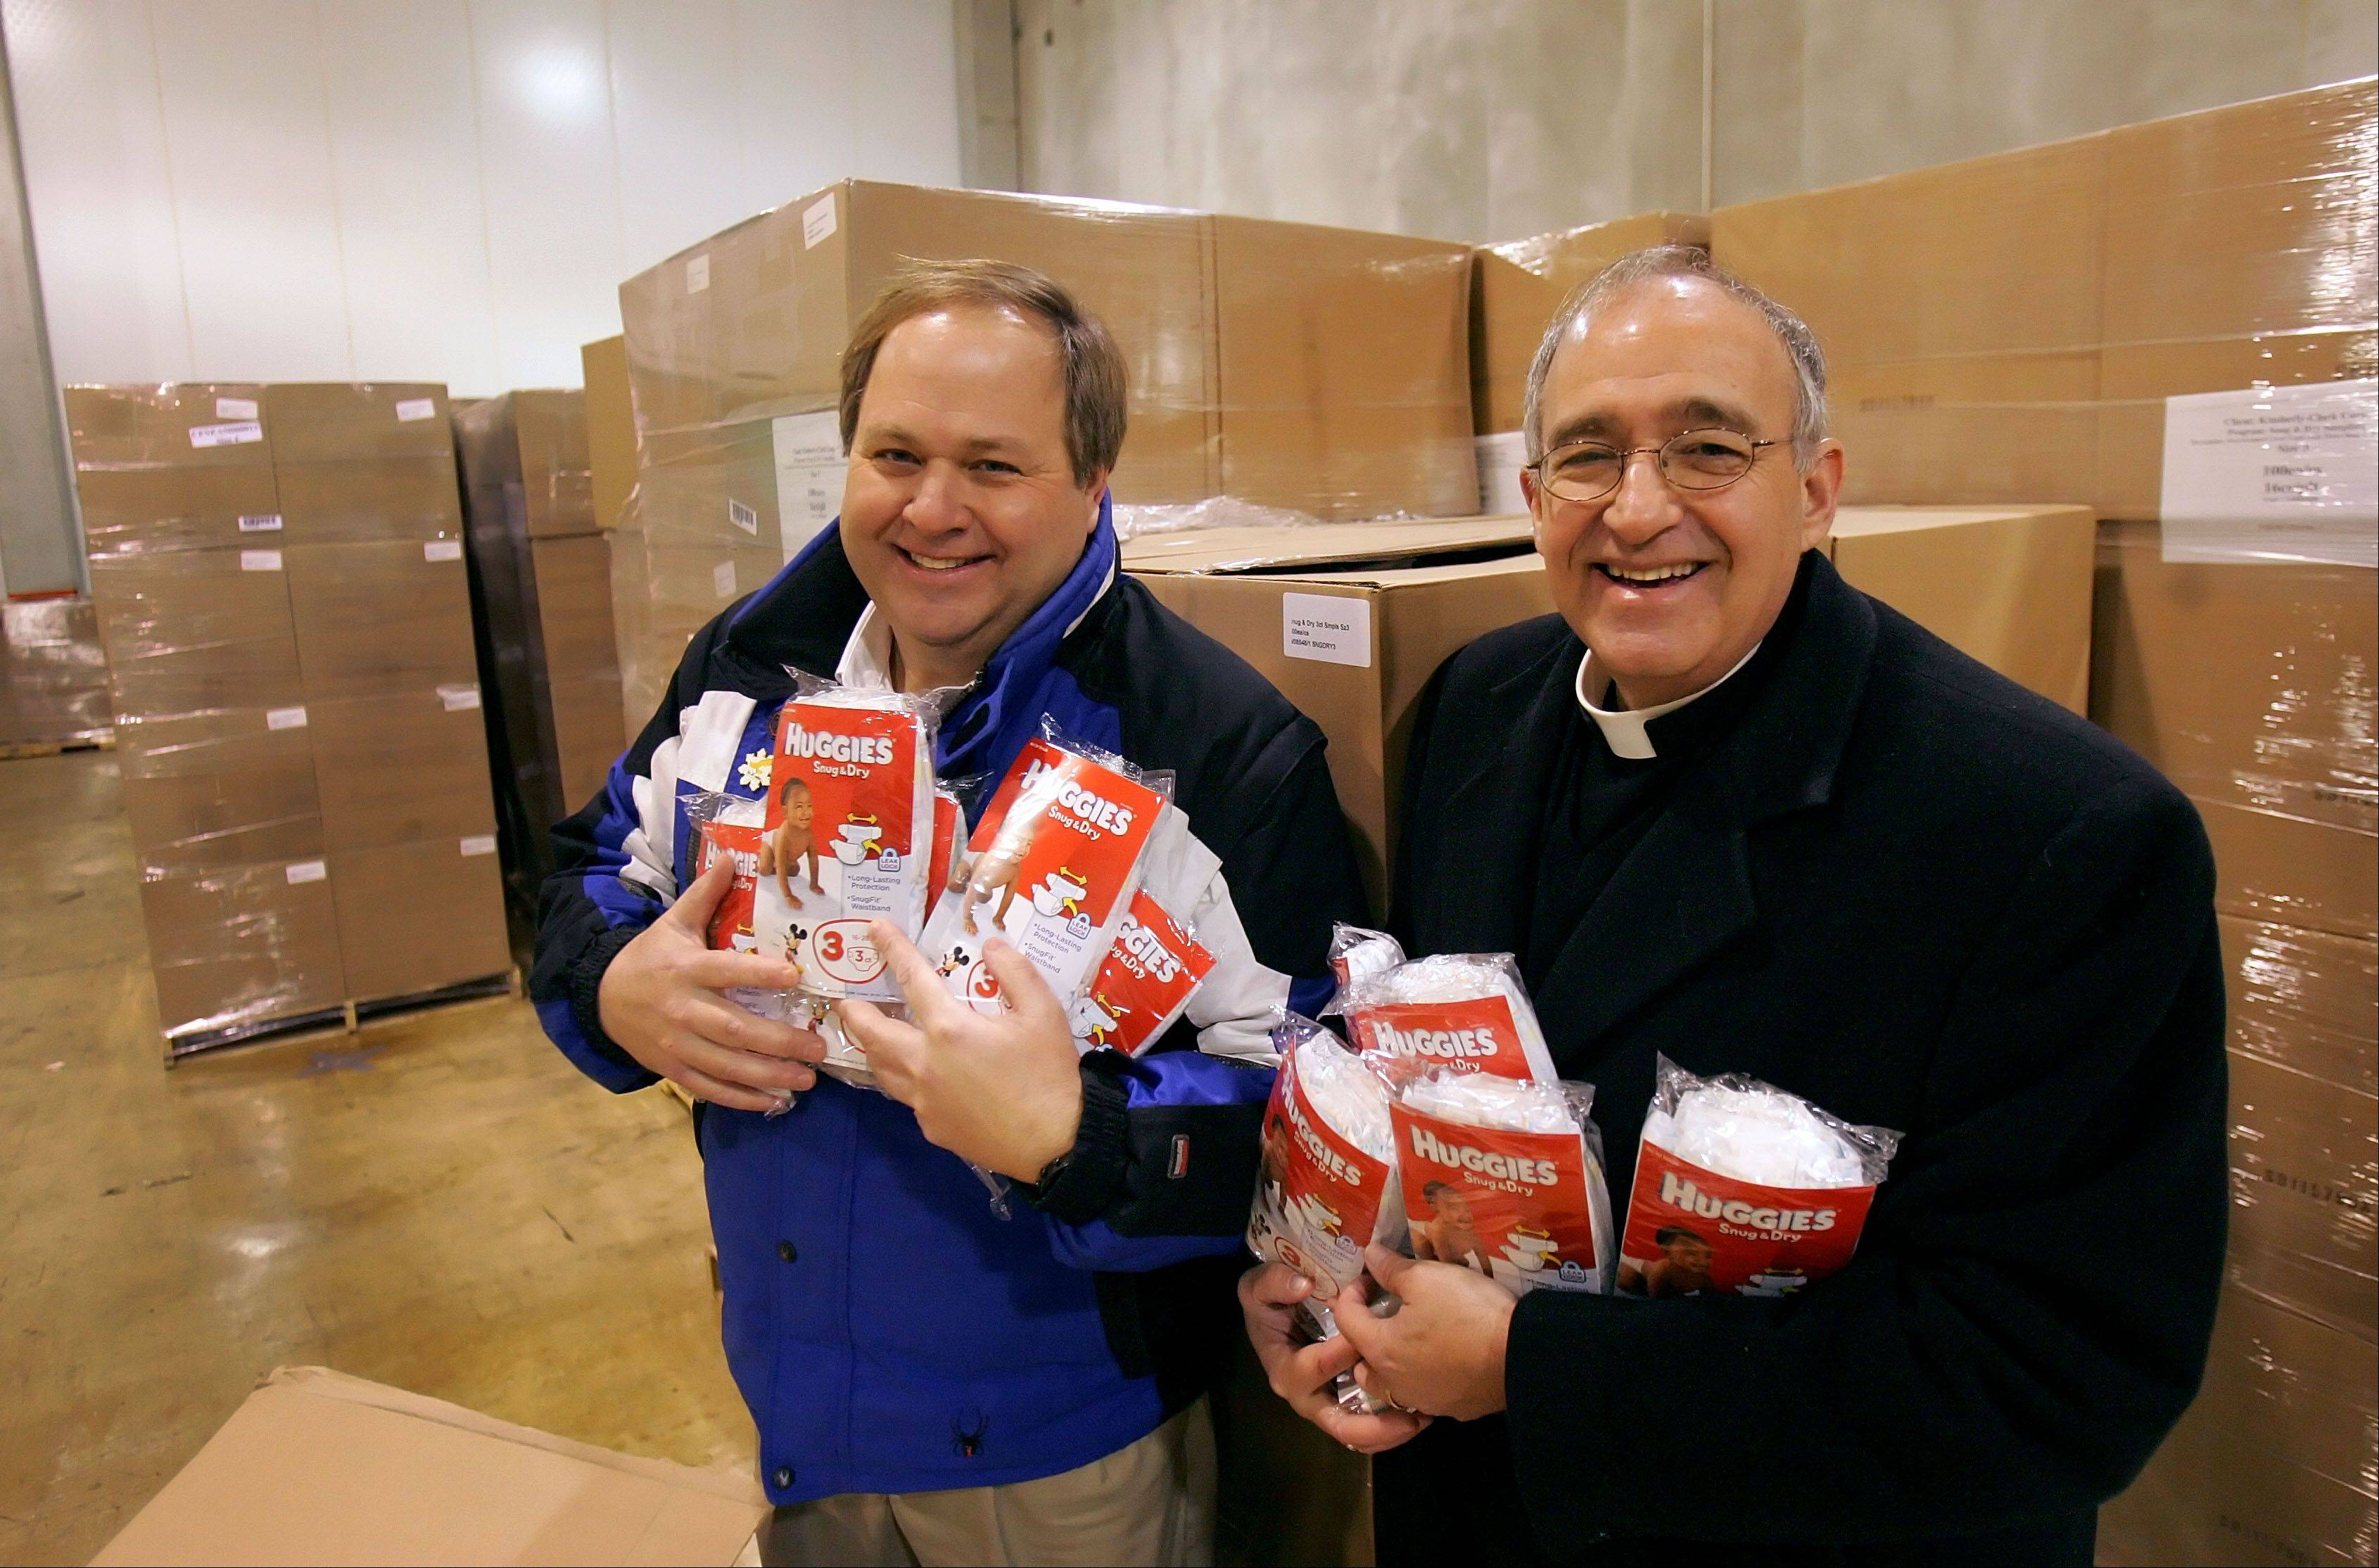 Diaper Bank Partnership of Lake County launched